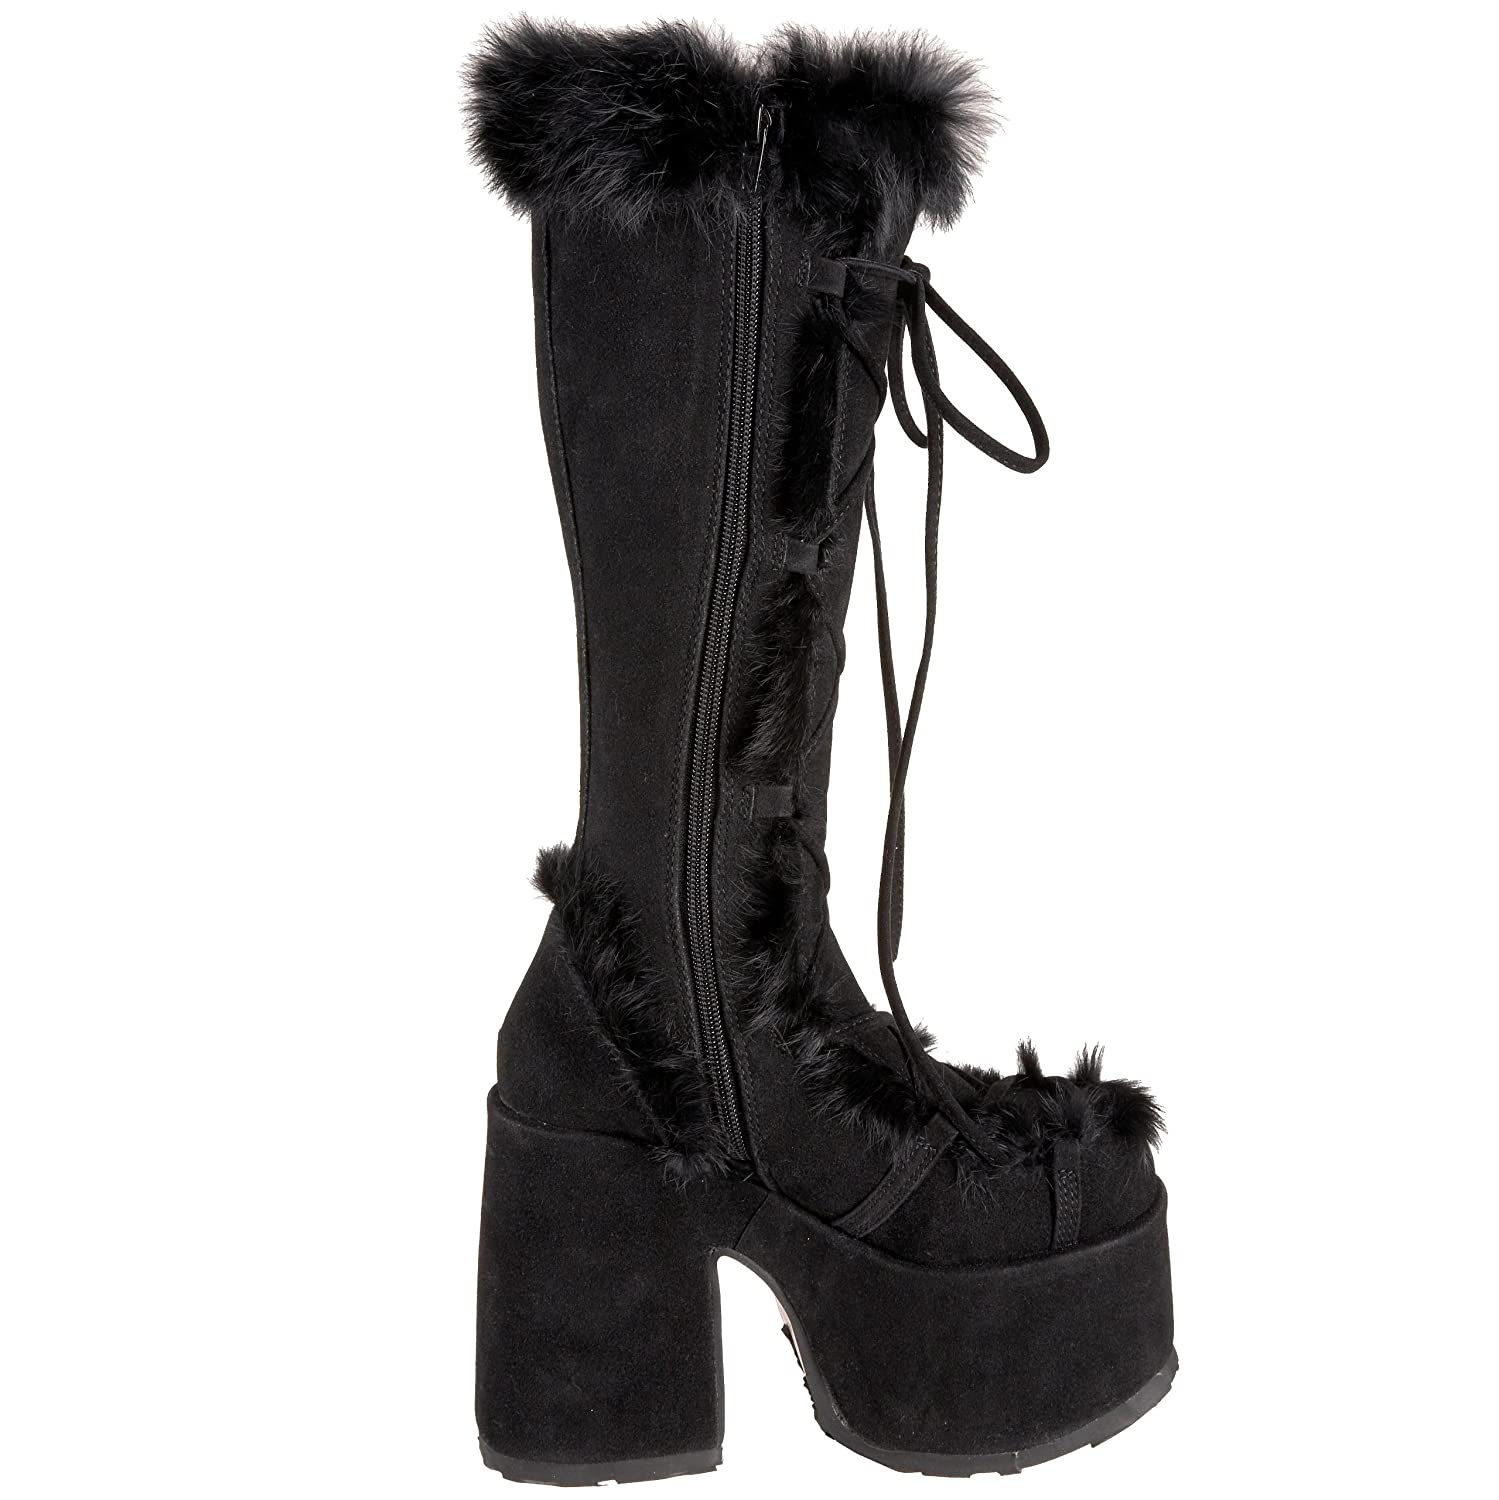 Pleaser Demonia By Women's Camel-311 Boot B0013JOUZS 9 B(M) US|Black Imitation Suede